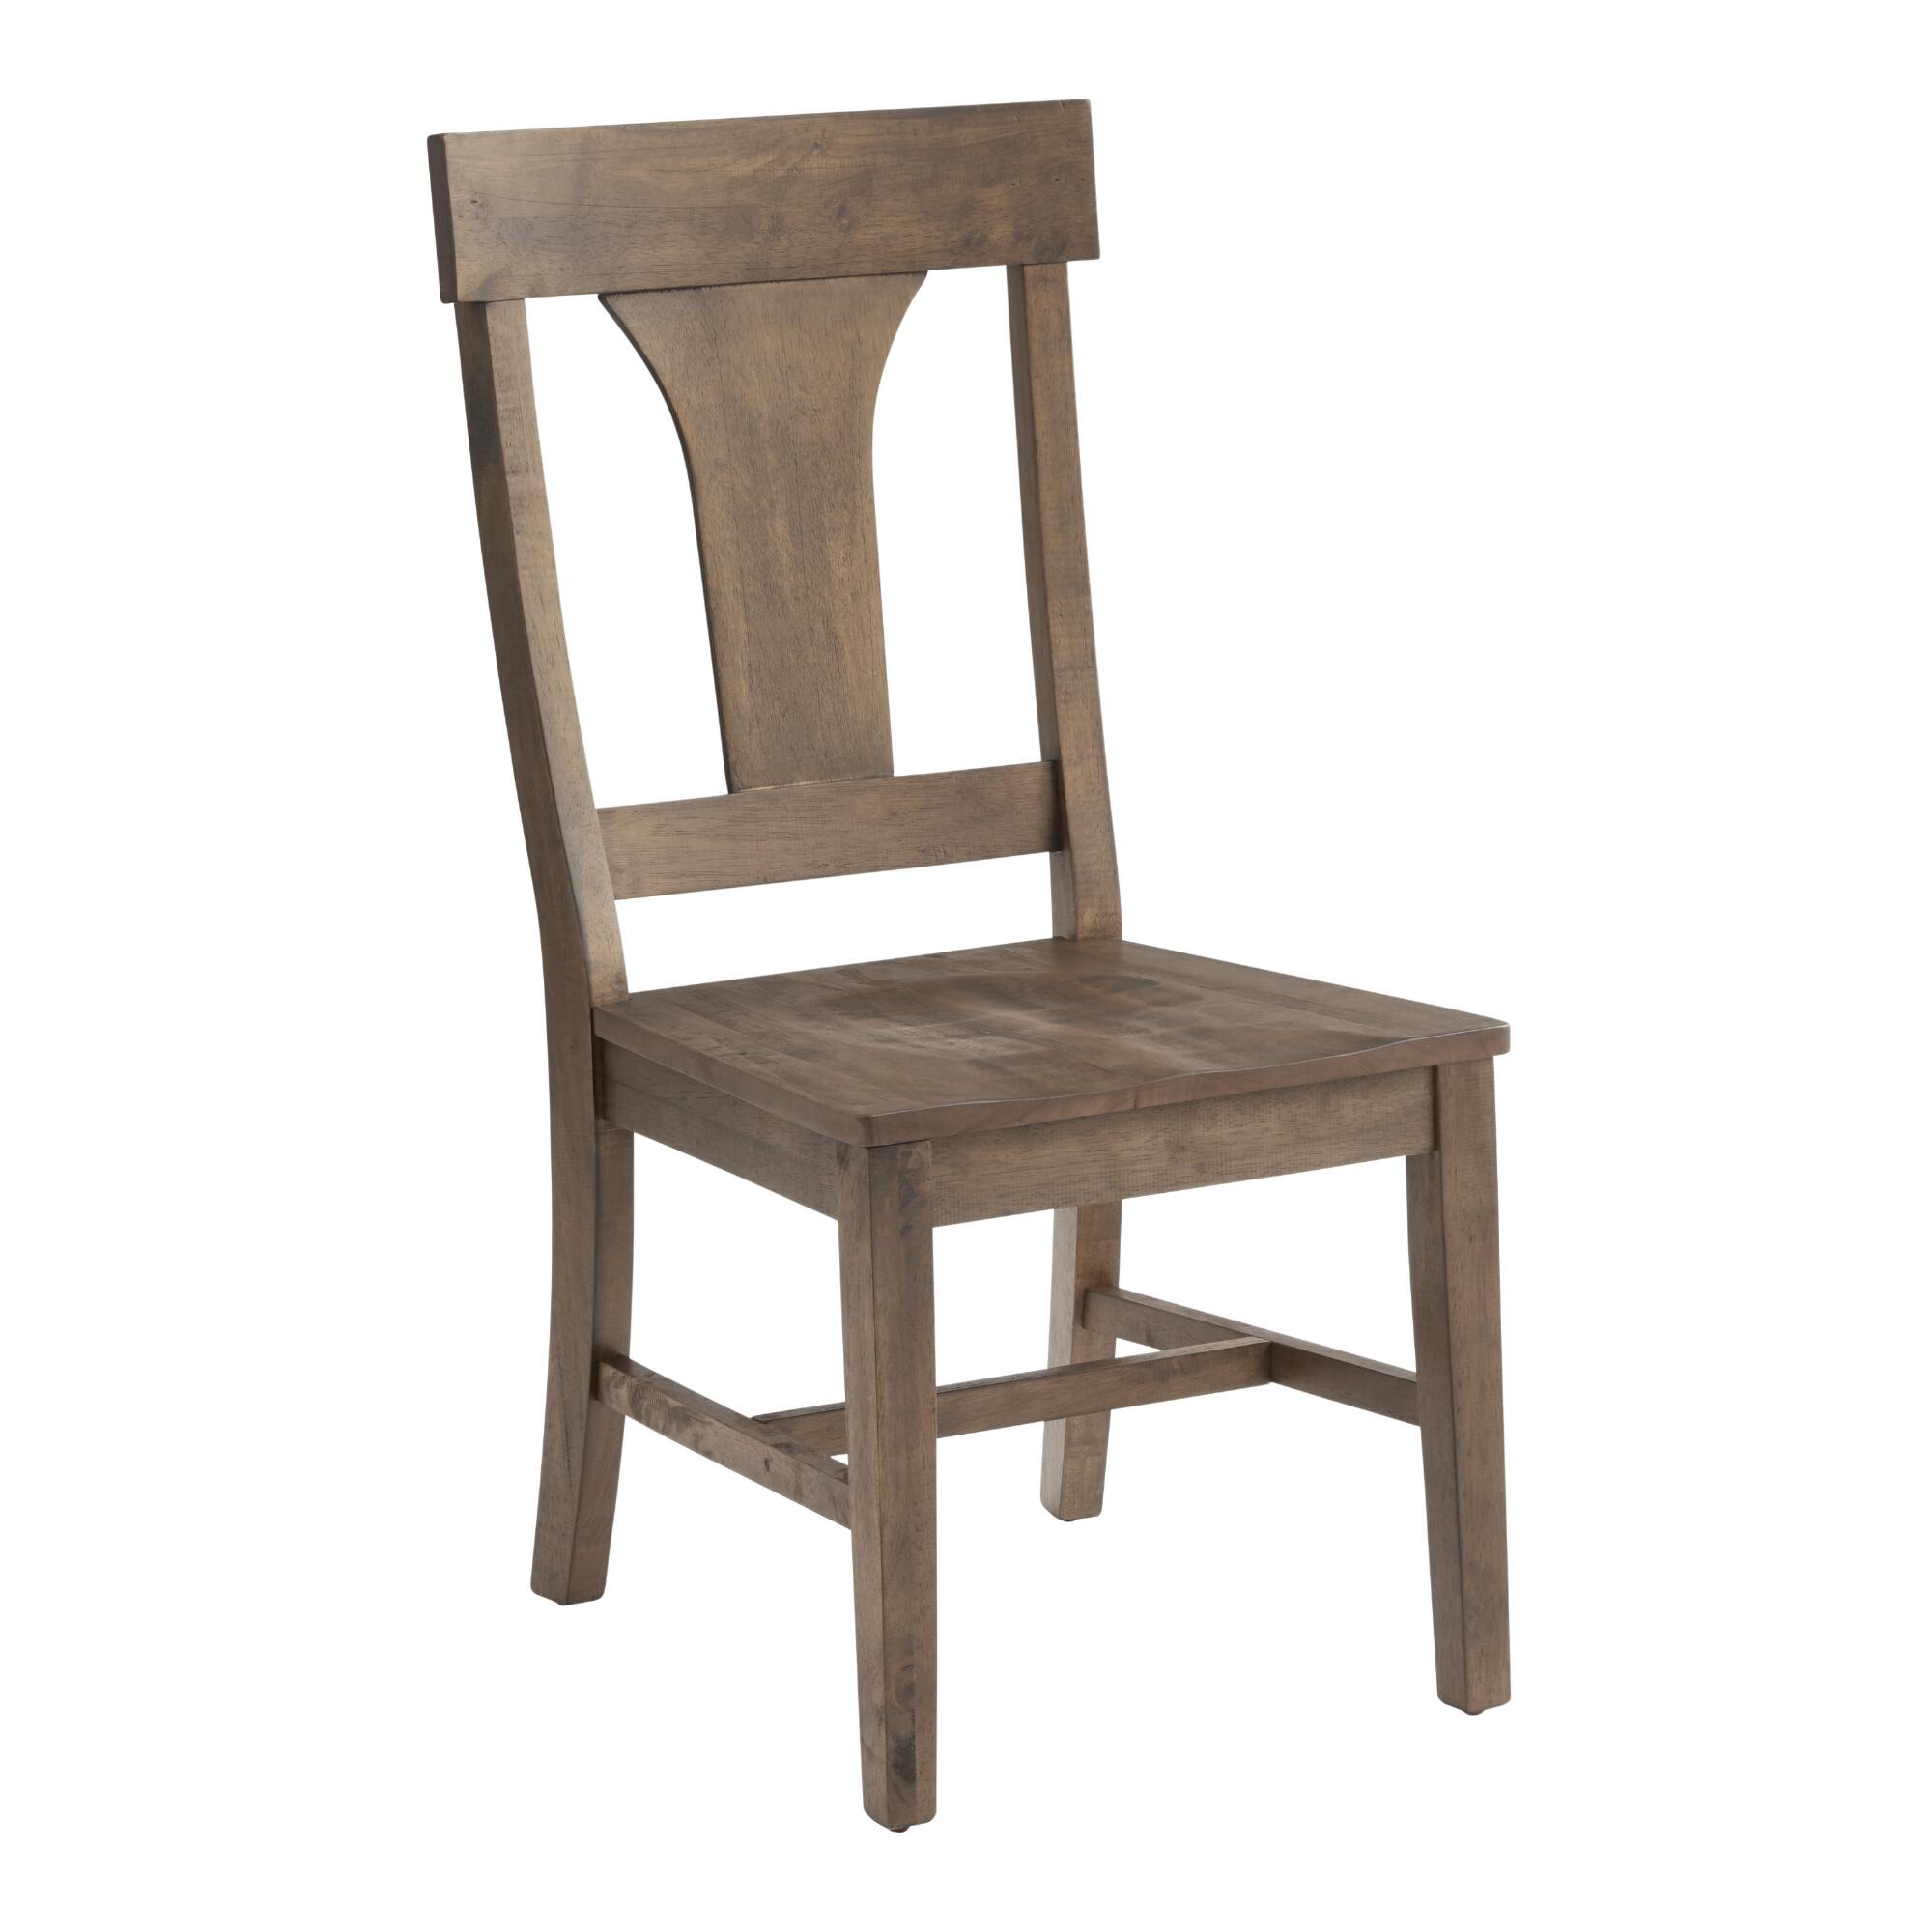 Rustic wood brinley dining chairs set of 2 world market - Wooden dining room chairs ...